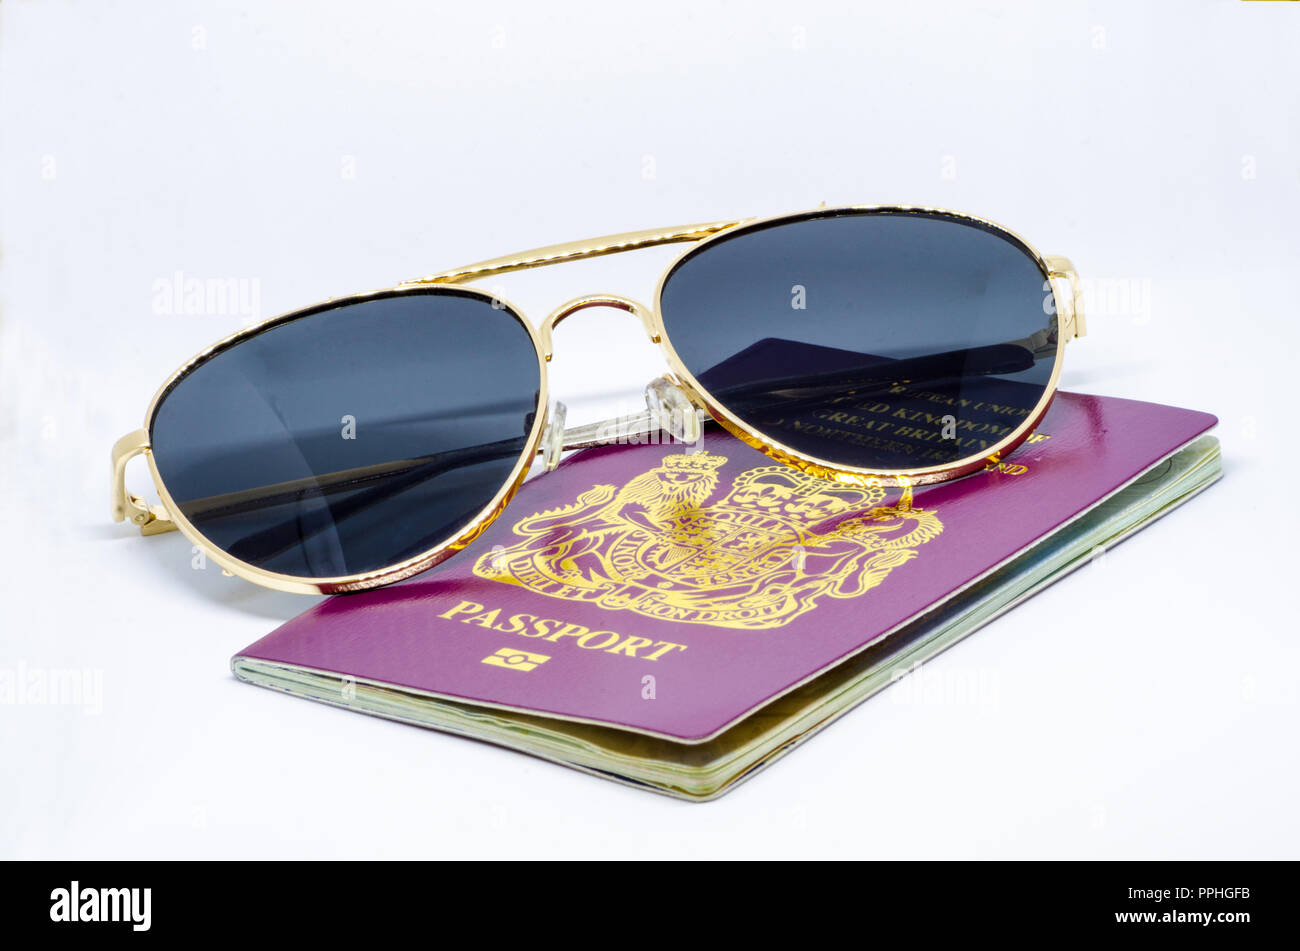 holiday-and-travel-concept-a-red-burgundy-british-european-passport-and-a-pair-of-sunglasses-on-a-white-background-PPHGFB.jpg